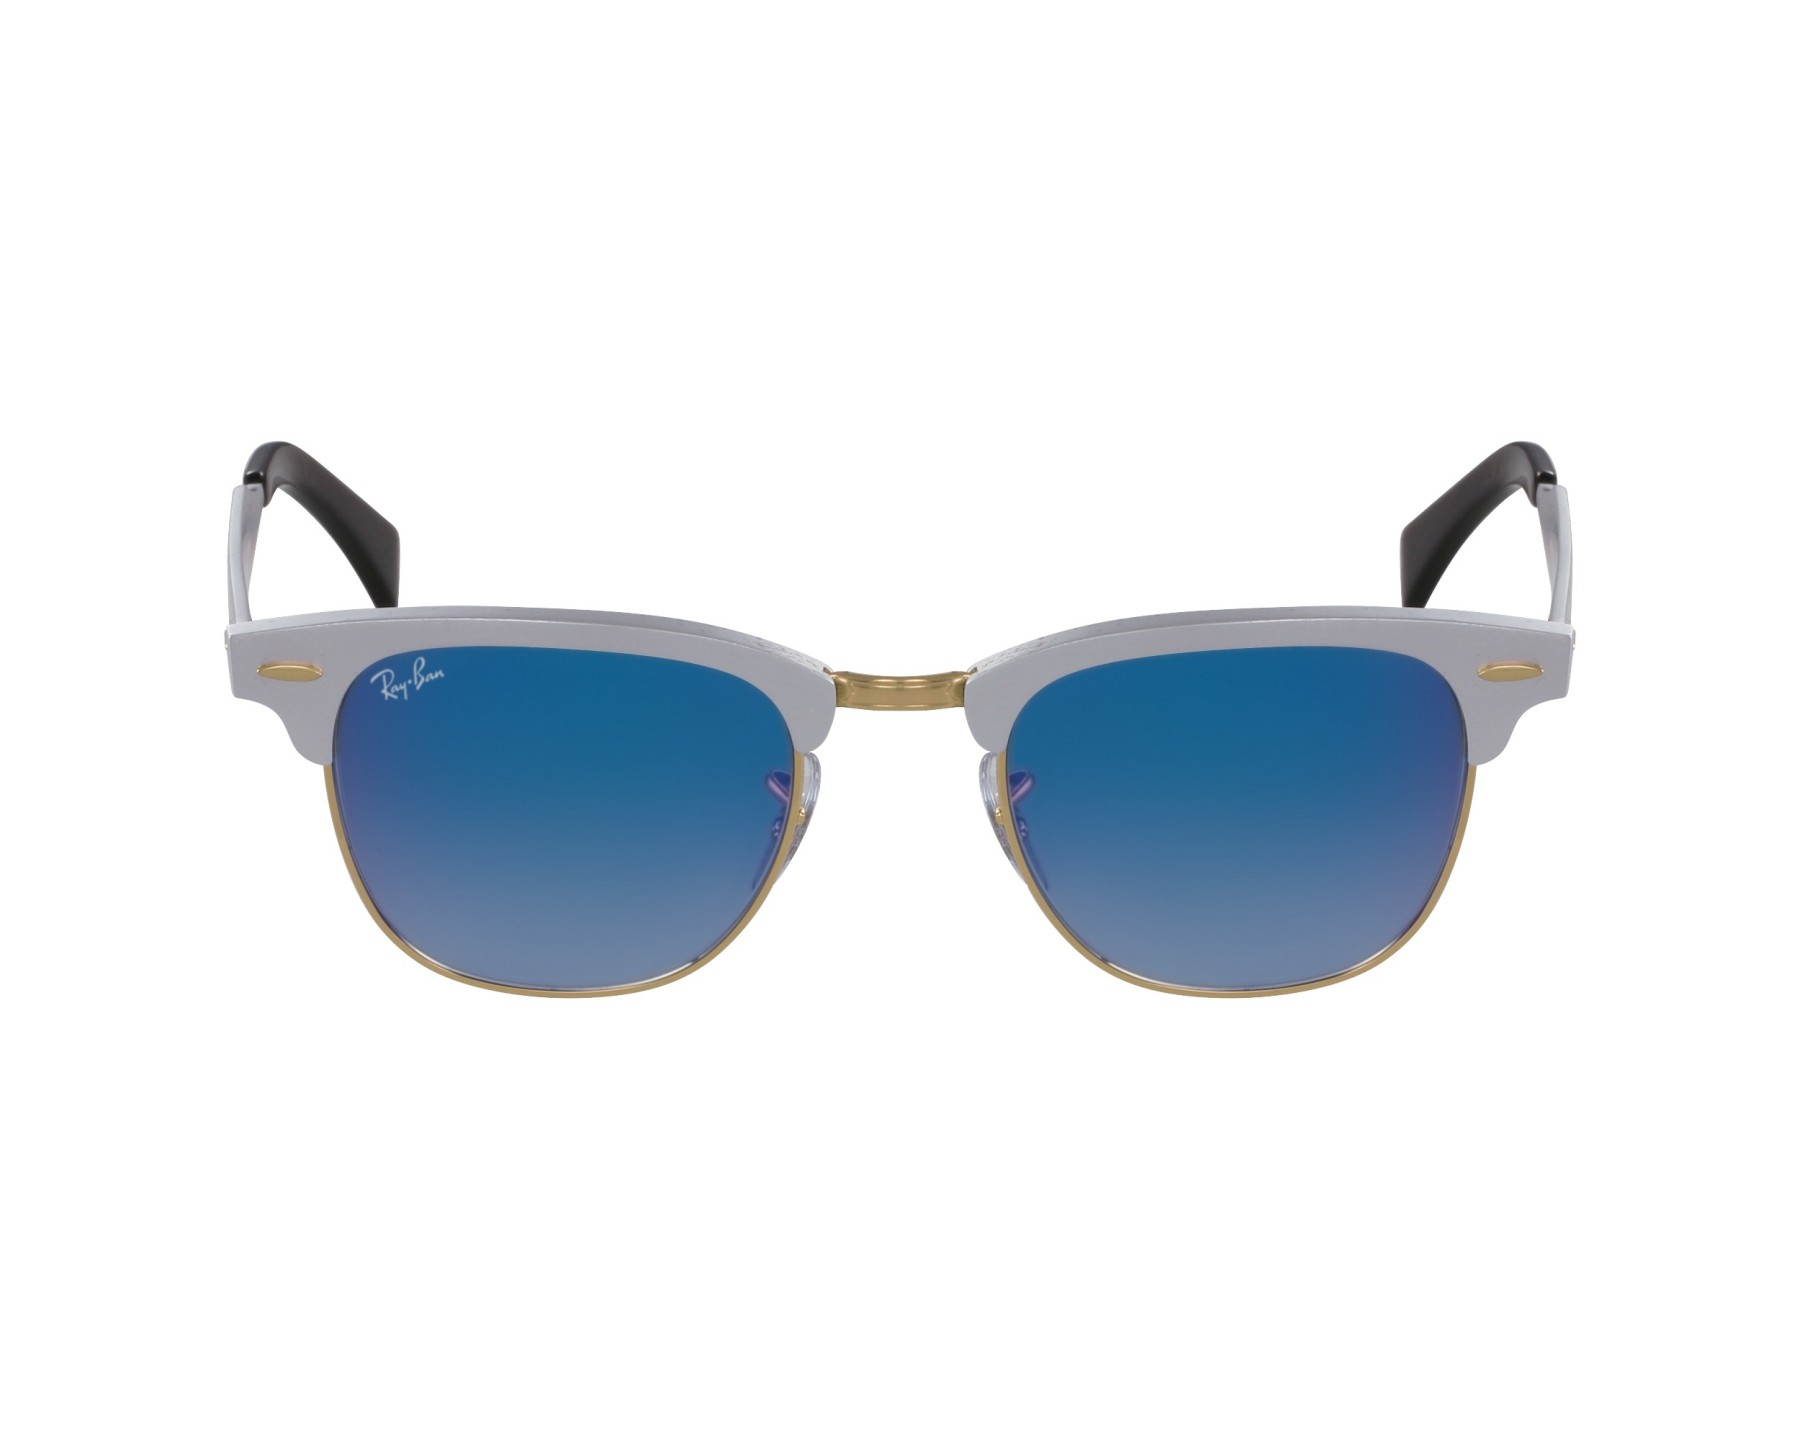 Ray-Ban RB3507 Sonnenbrille Silber 137-7Q 49mm 8sTXU2T